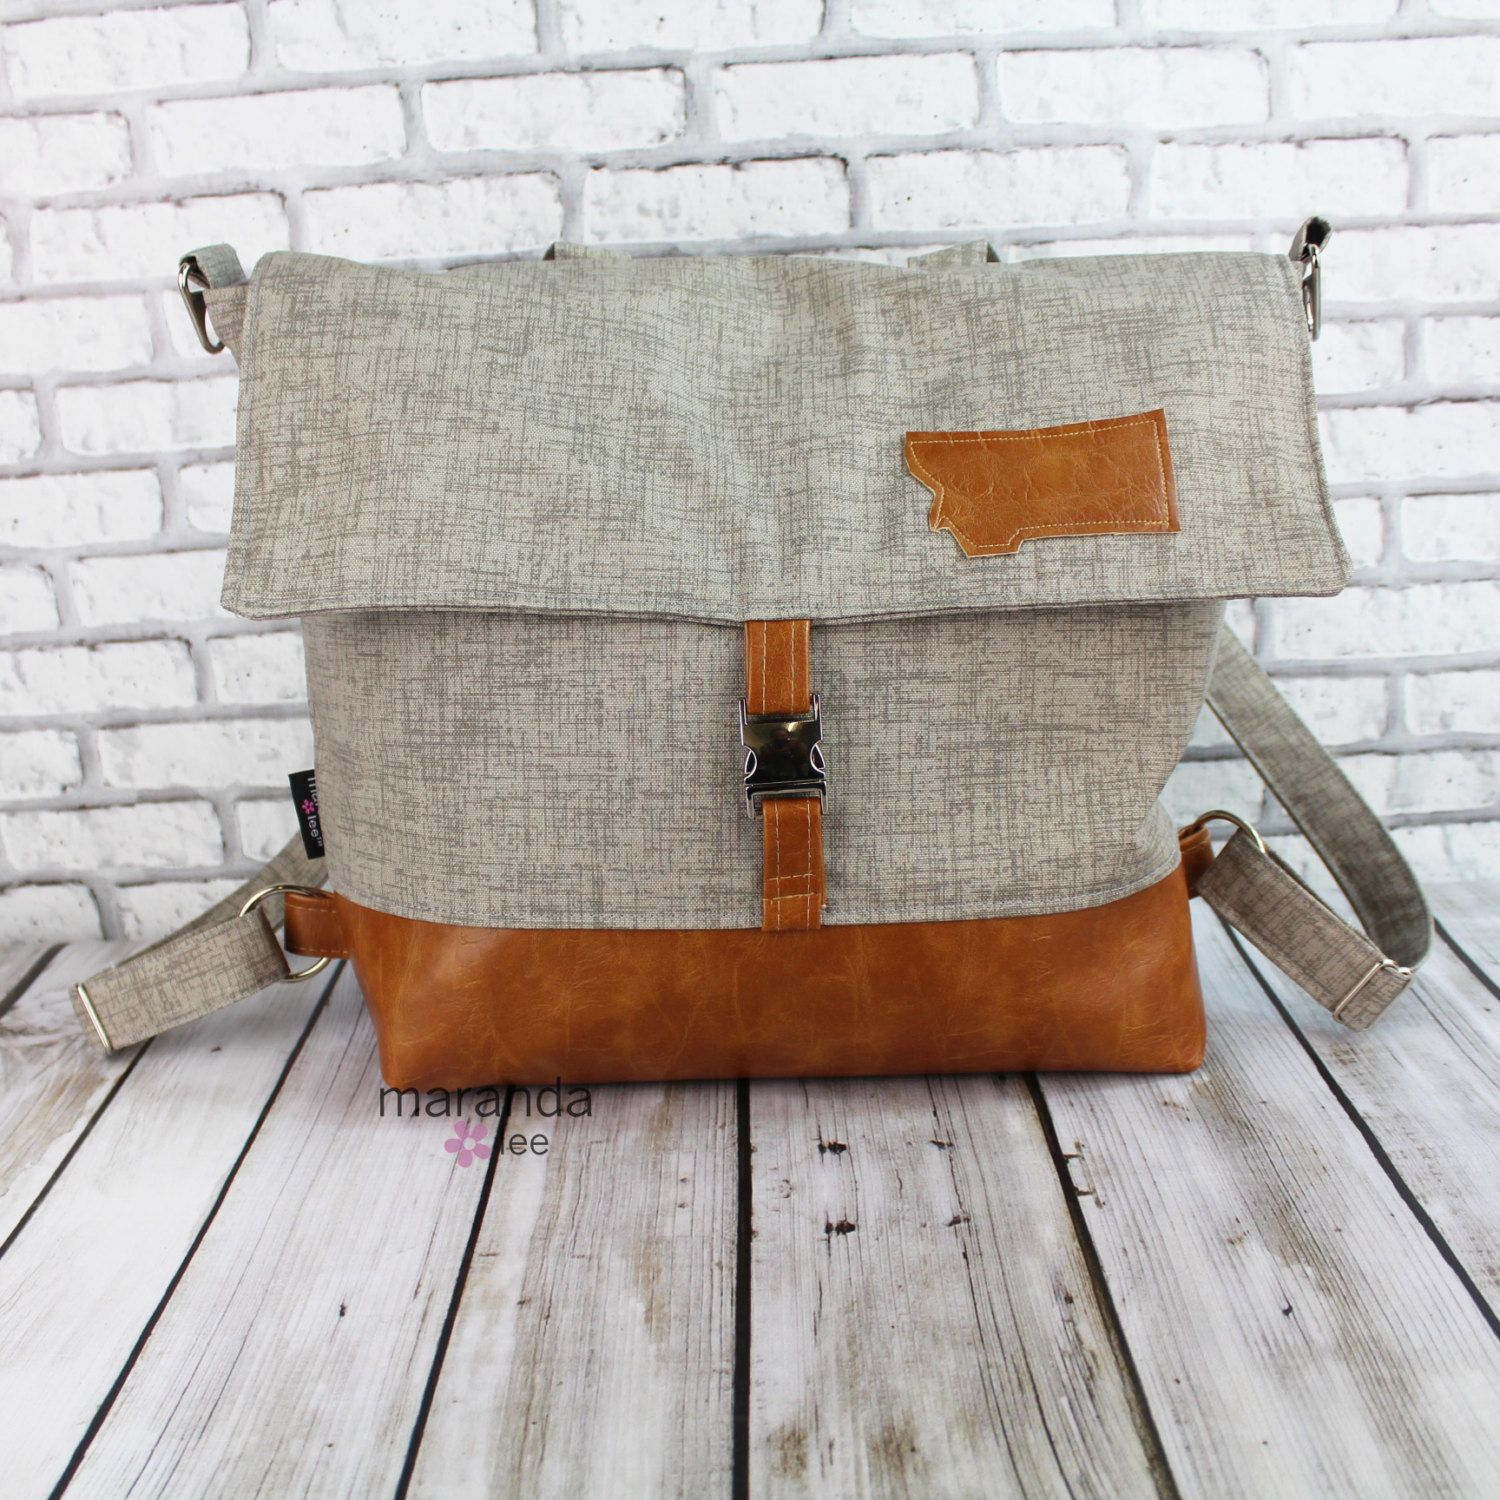 Lulu Large Flap Backpack - Grey Denim and PU Leather  Travel Business Nappy Bag Stroller Attachment by marandalee on Etsy